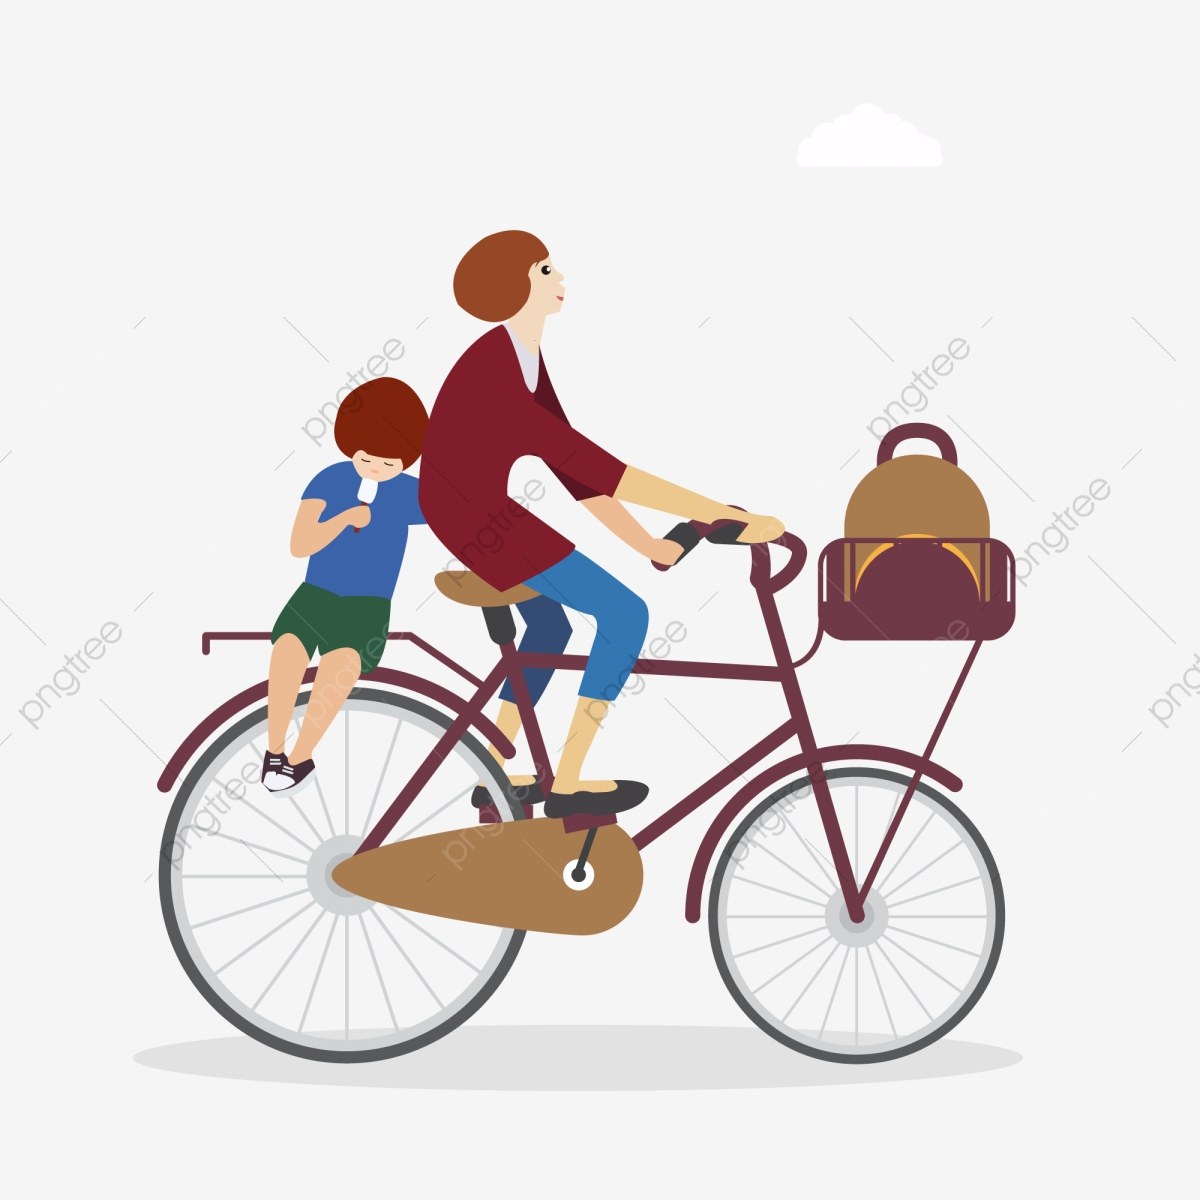 Free clipart boy riding bike with mom. Starting school cycling little